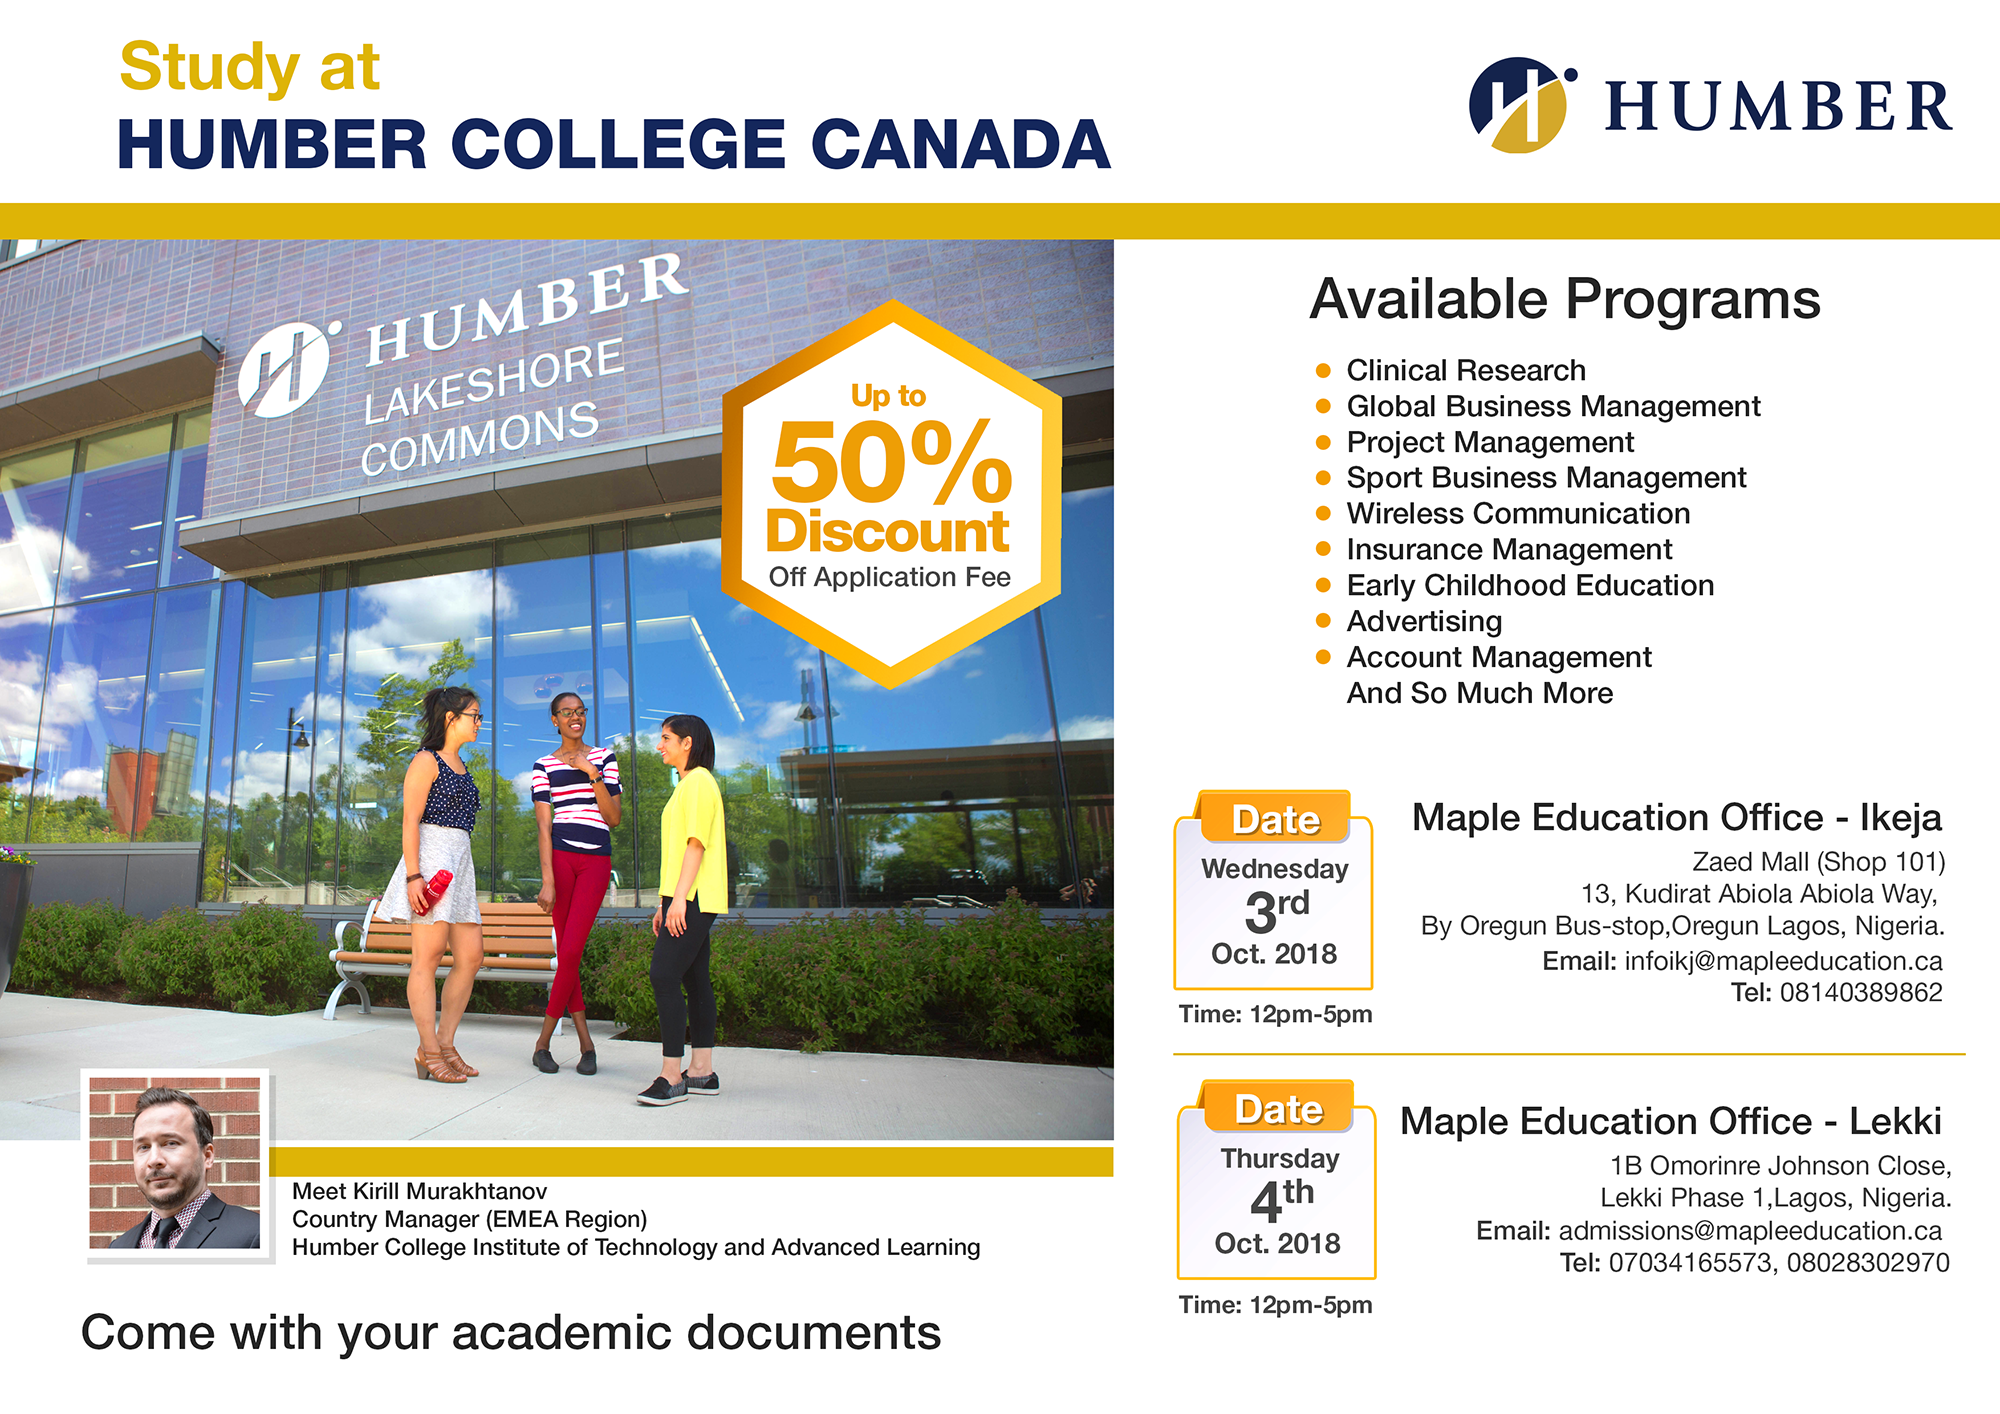 Free Education Seminar Work While You Study At Humber College Canada